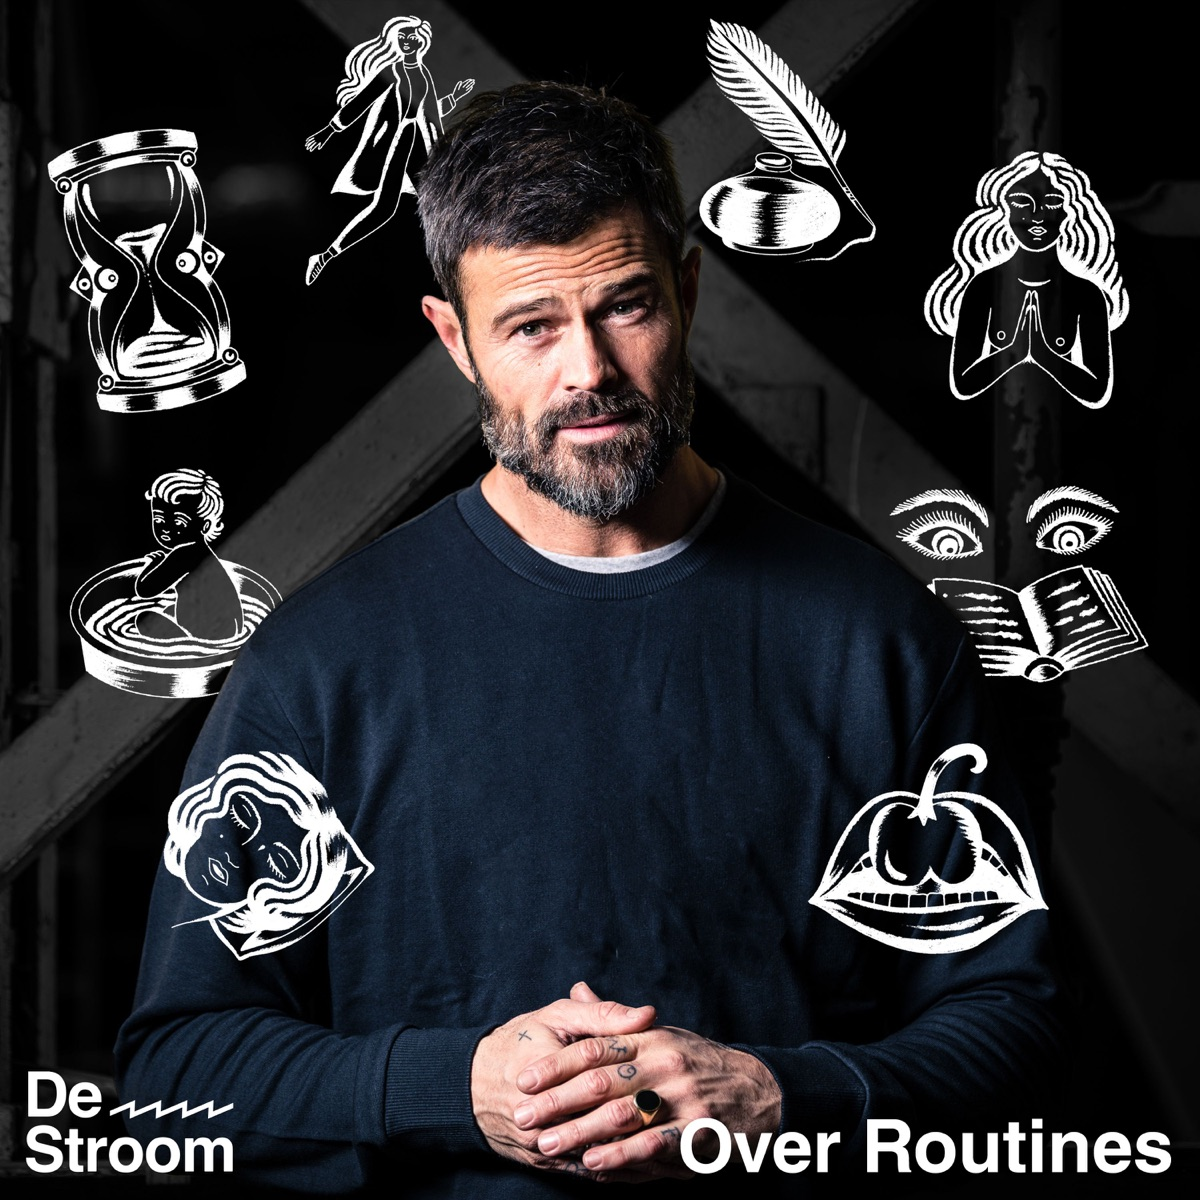 Over Routines